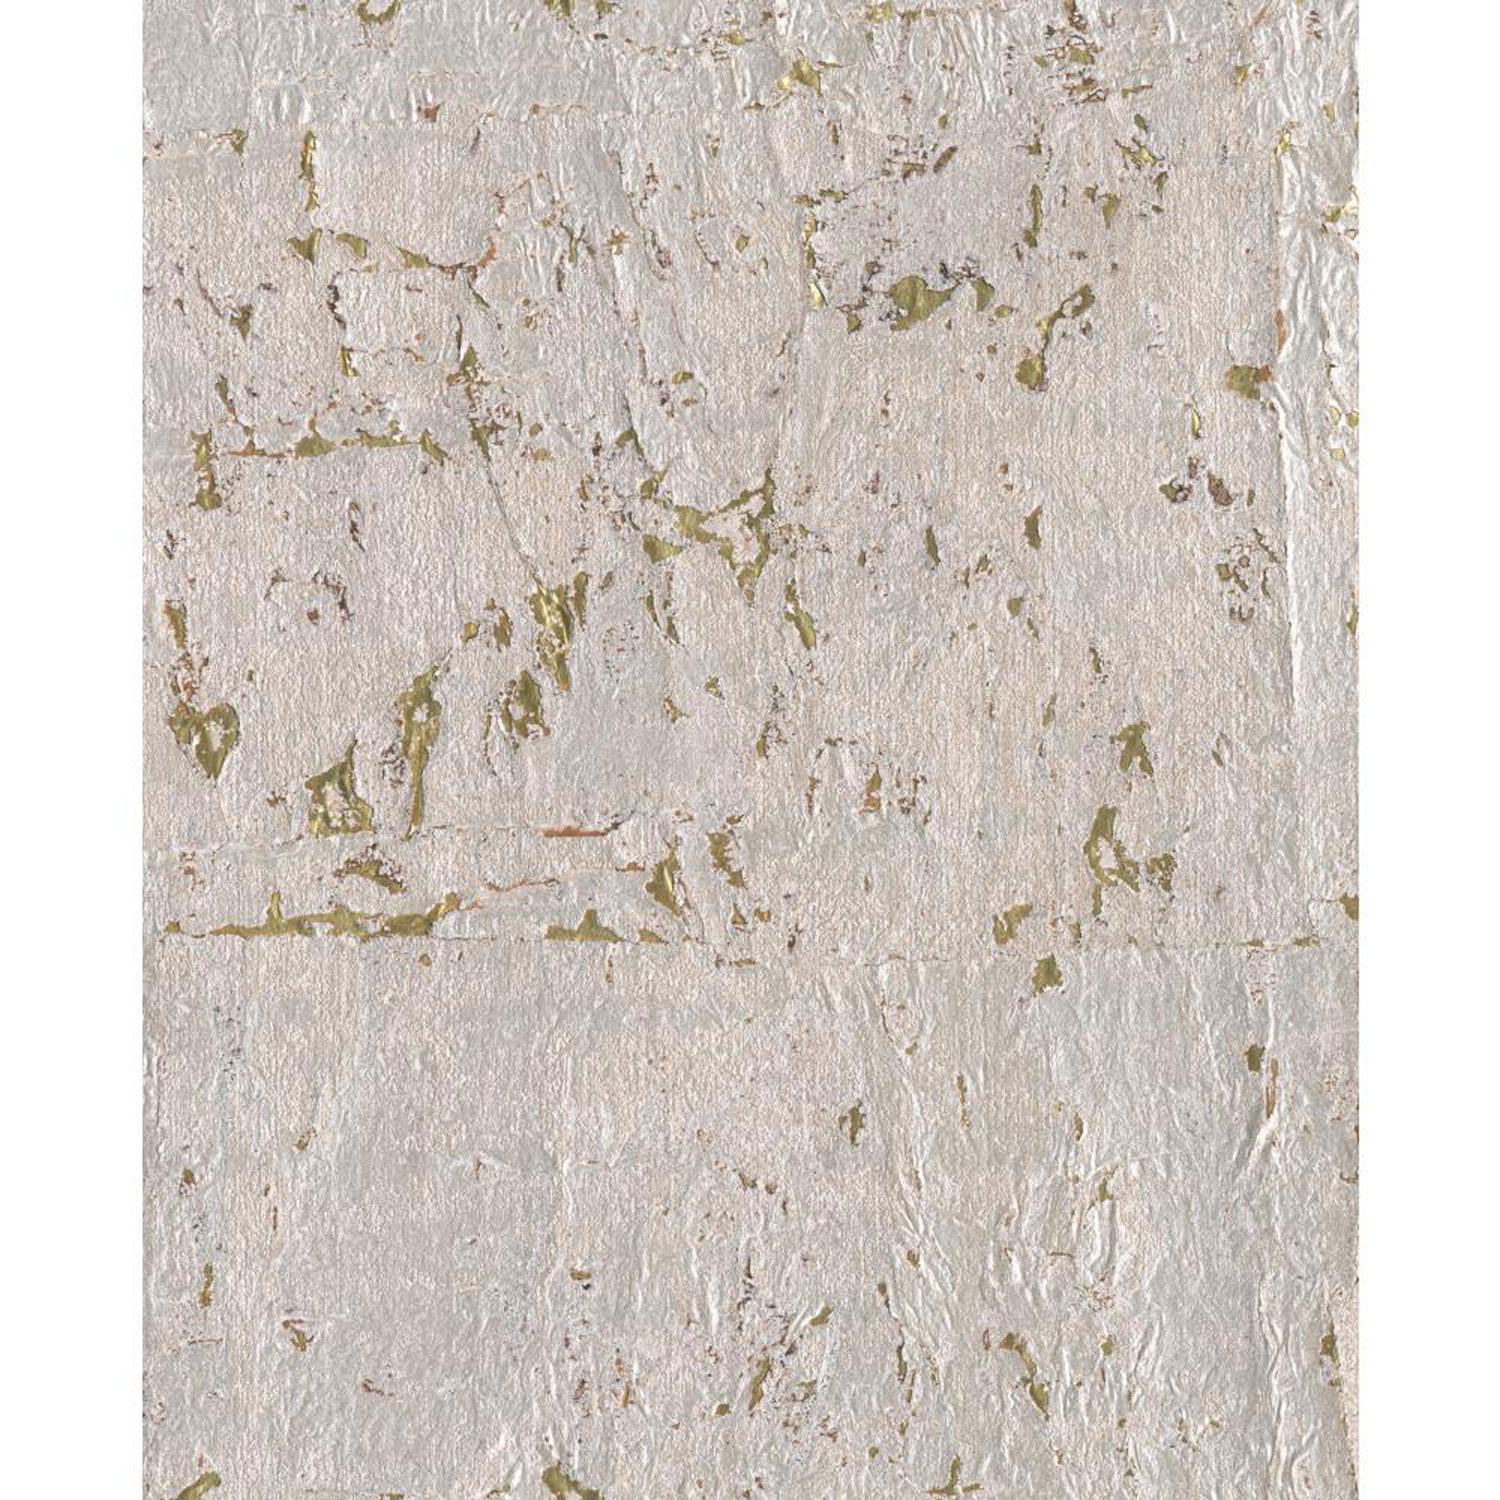 Candice-Olson-Modern-Nature-Silvery-Grey-And-Metallic-Gold-Cork-York-Wallcoverin-wallpaper-wp3803608